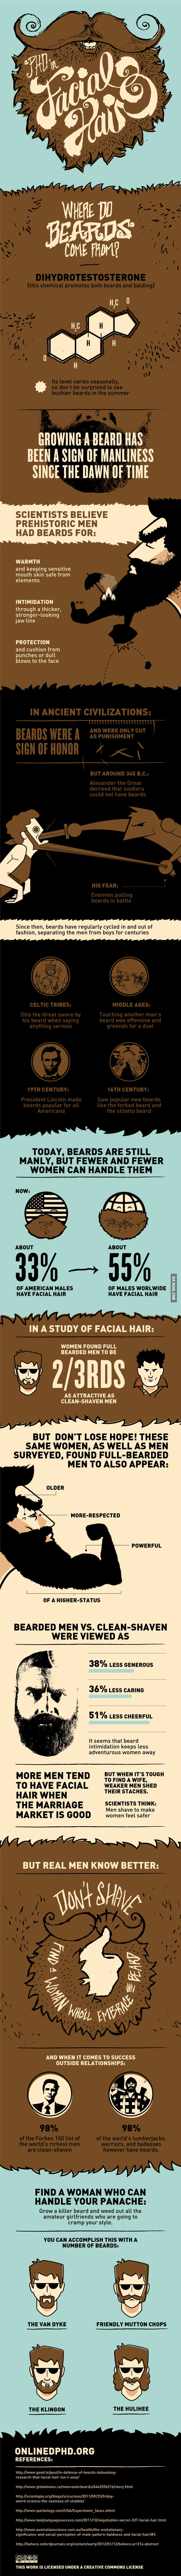 All you need to know about beards